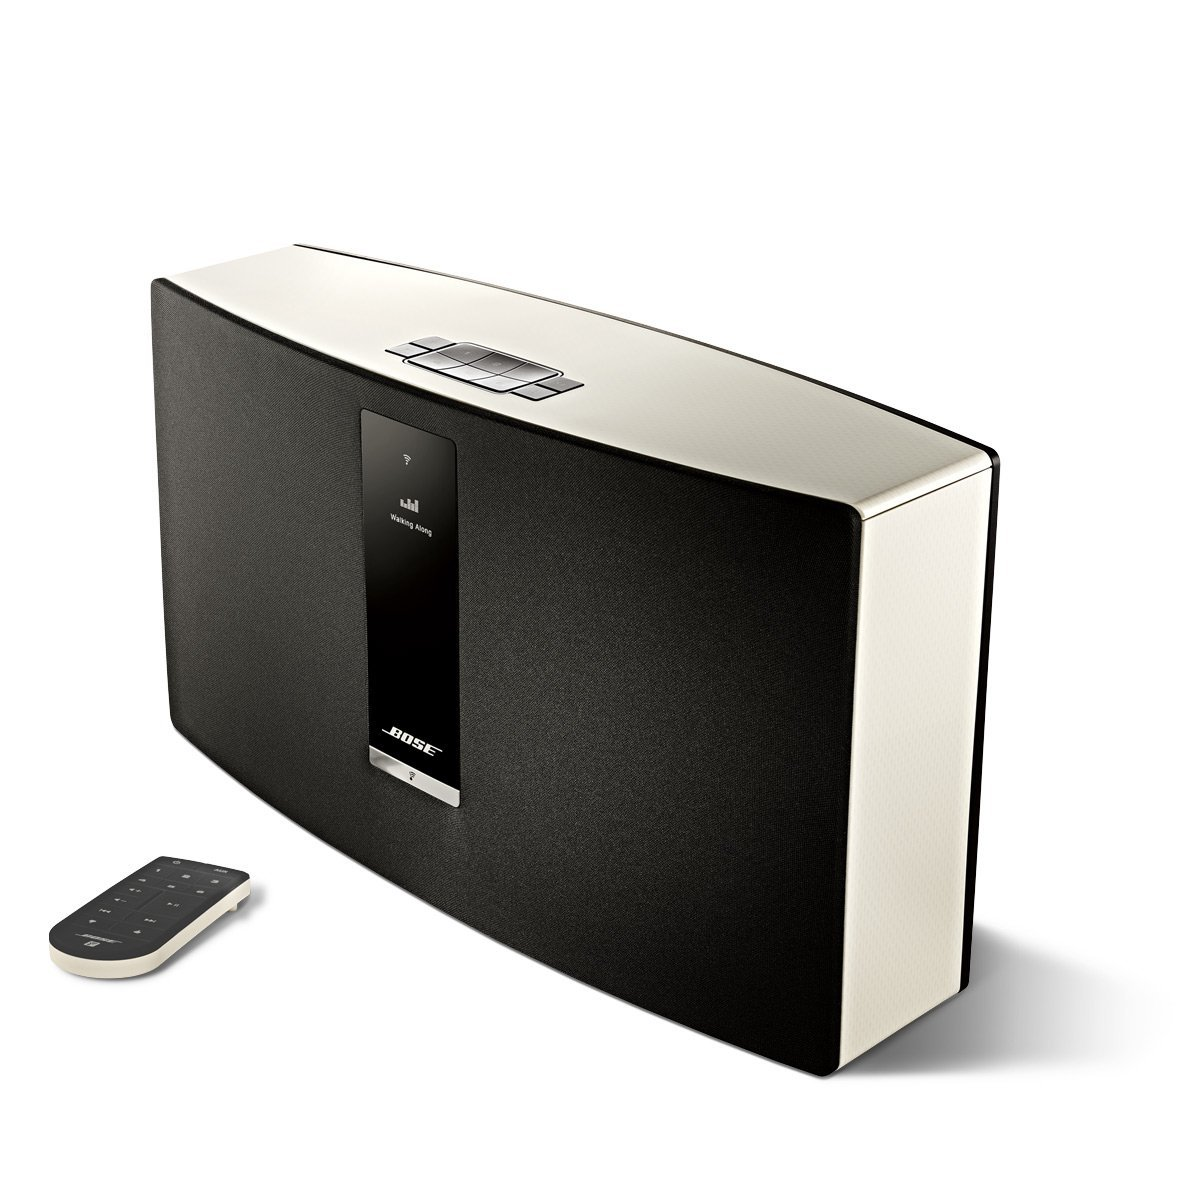 blitzangebote iphone rennbahn airplay receiver bose. Black Bedroom Furniture Sets. Home Design Ideas